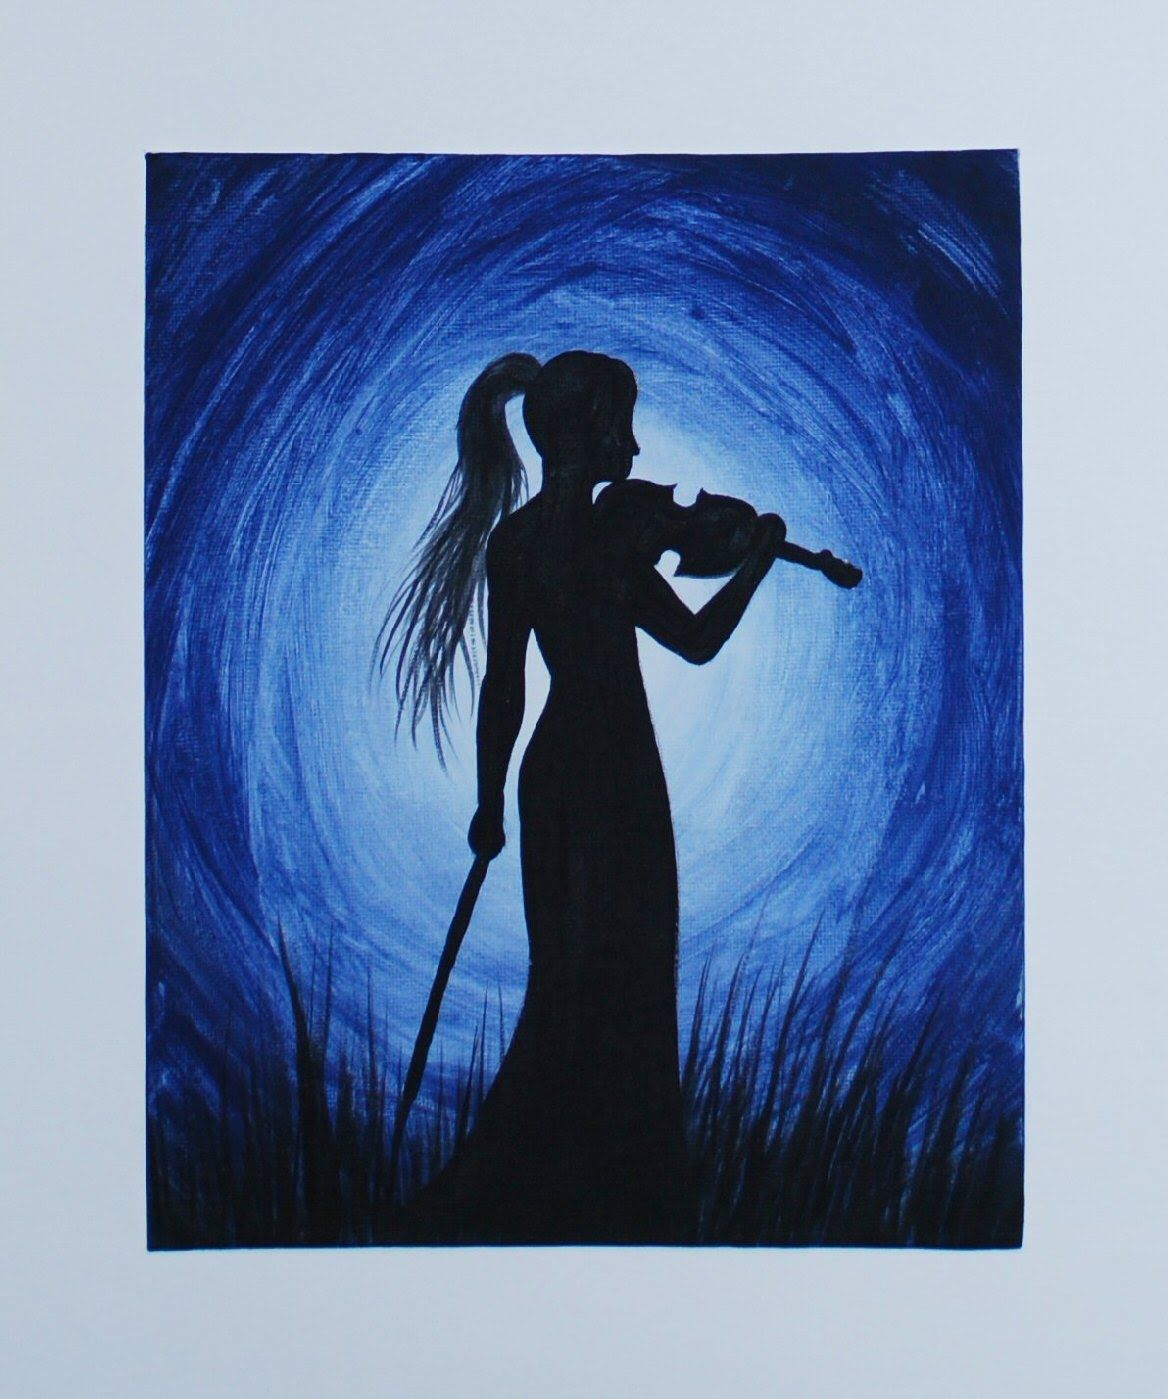 Acrylic silhouette painting on canvas board in this for Black and white acrylic painting techniques